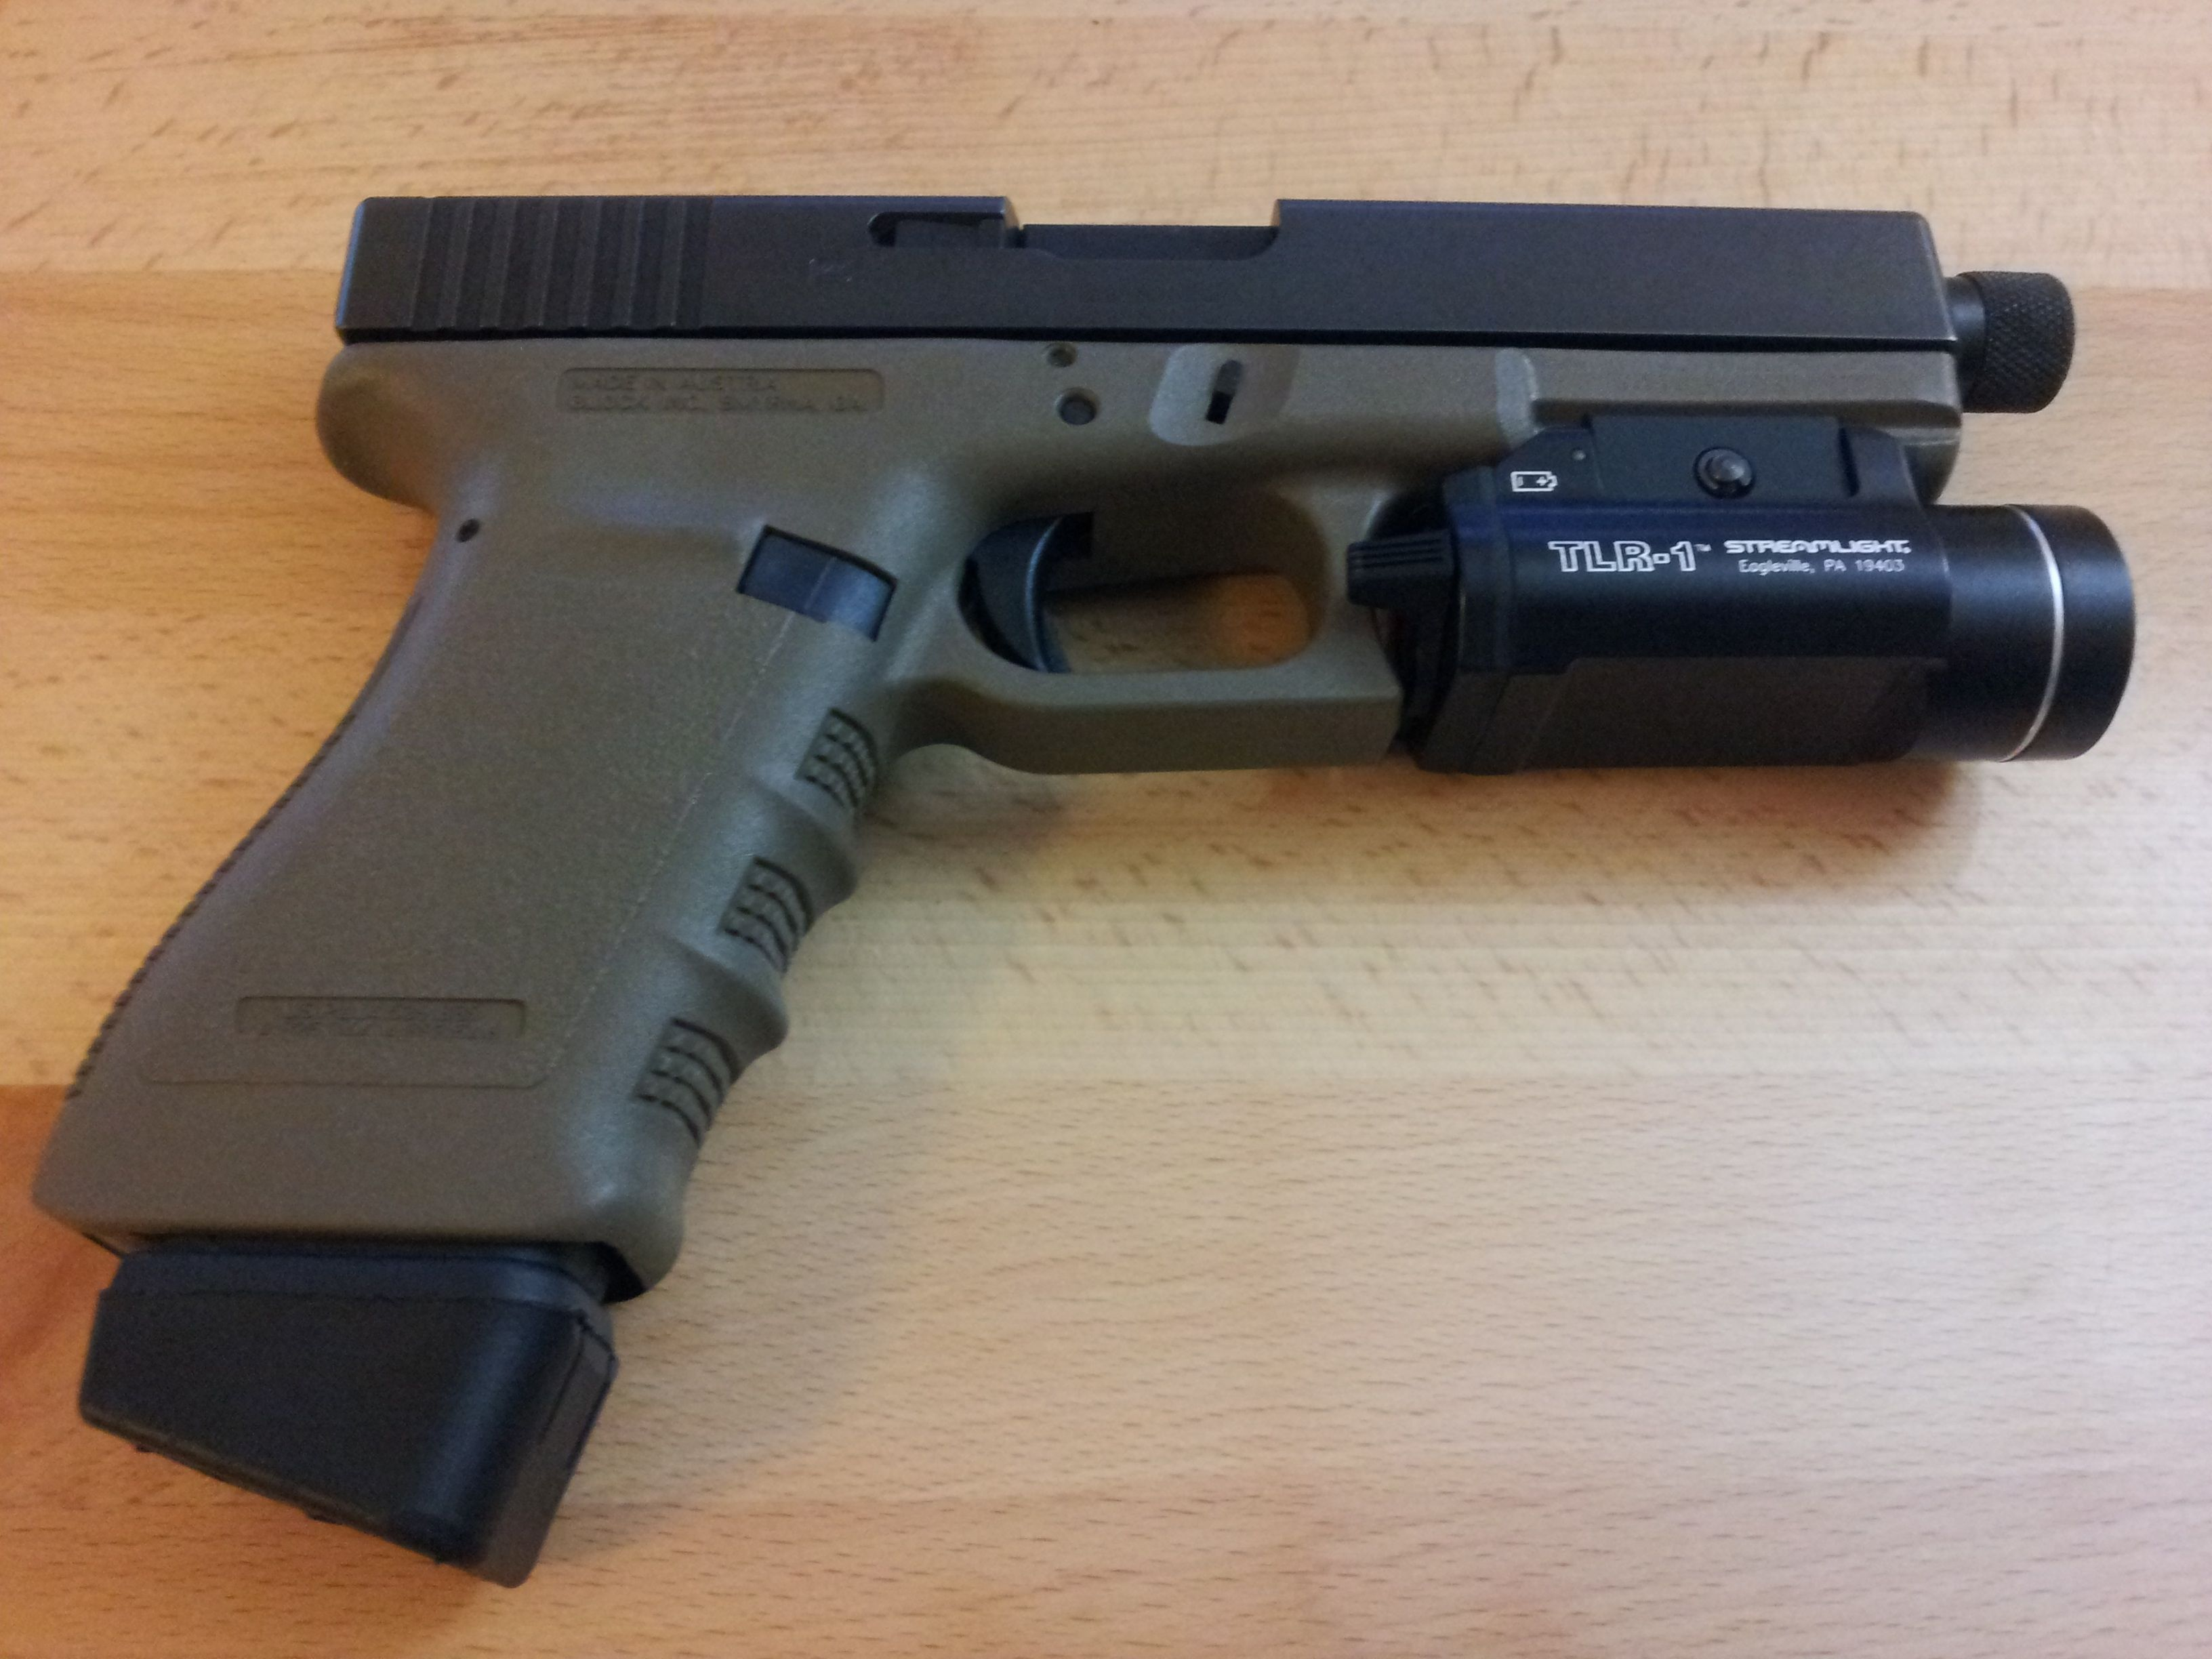 Glock 21 with TLR-1... stocking stuffer gift idea! Find our ...